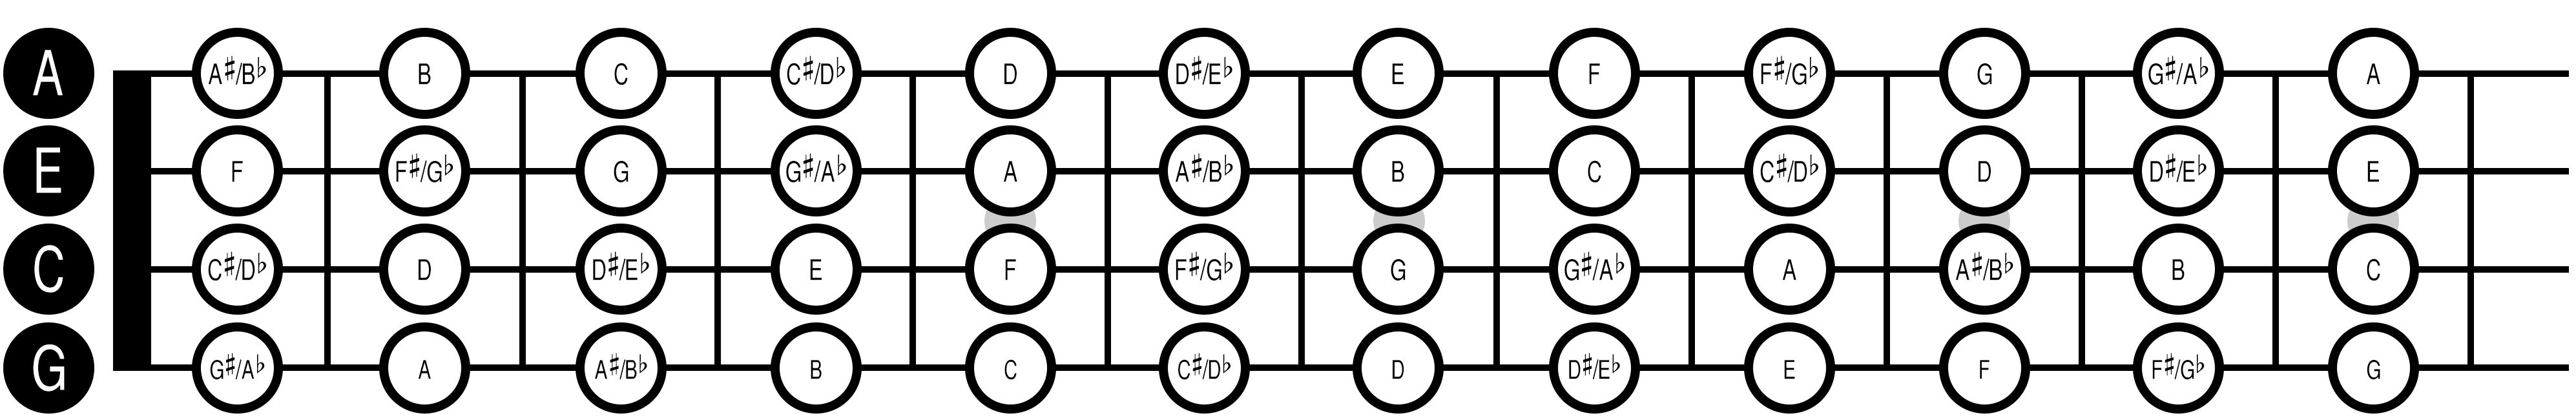 Discover ukulele chord theory making g major triads across the a triad is a three note chord the major triad is made up of the 1st 3rd and 5th scale degrees of a major scale hexwebz Image collections